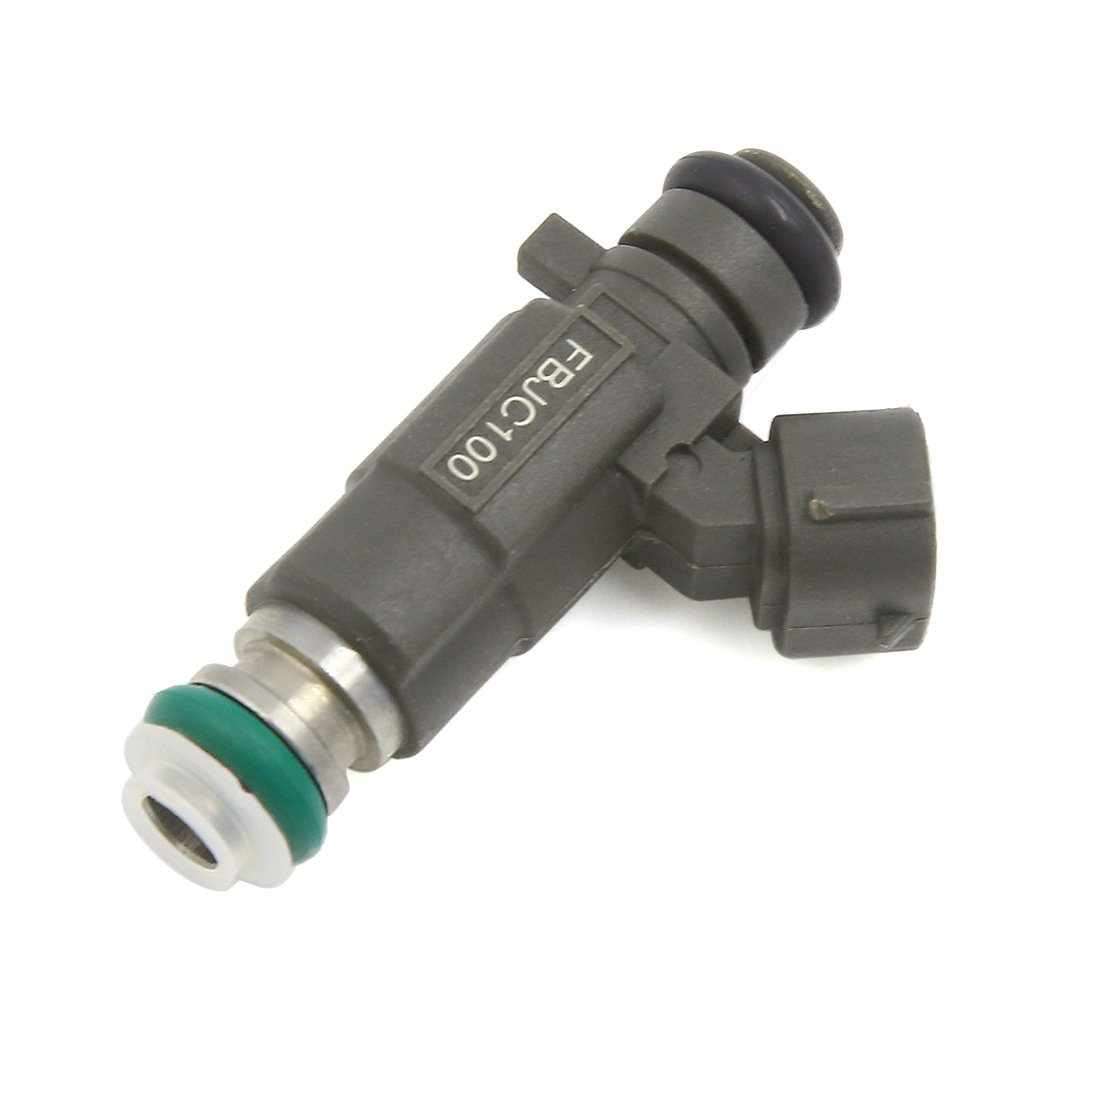 uxcell FBJC100 Flow Matched Fuel Injector for Nissan 2.0 2.2 2.5 3.0 3.5